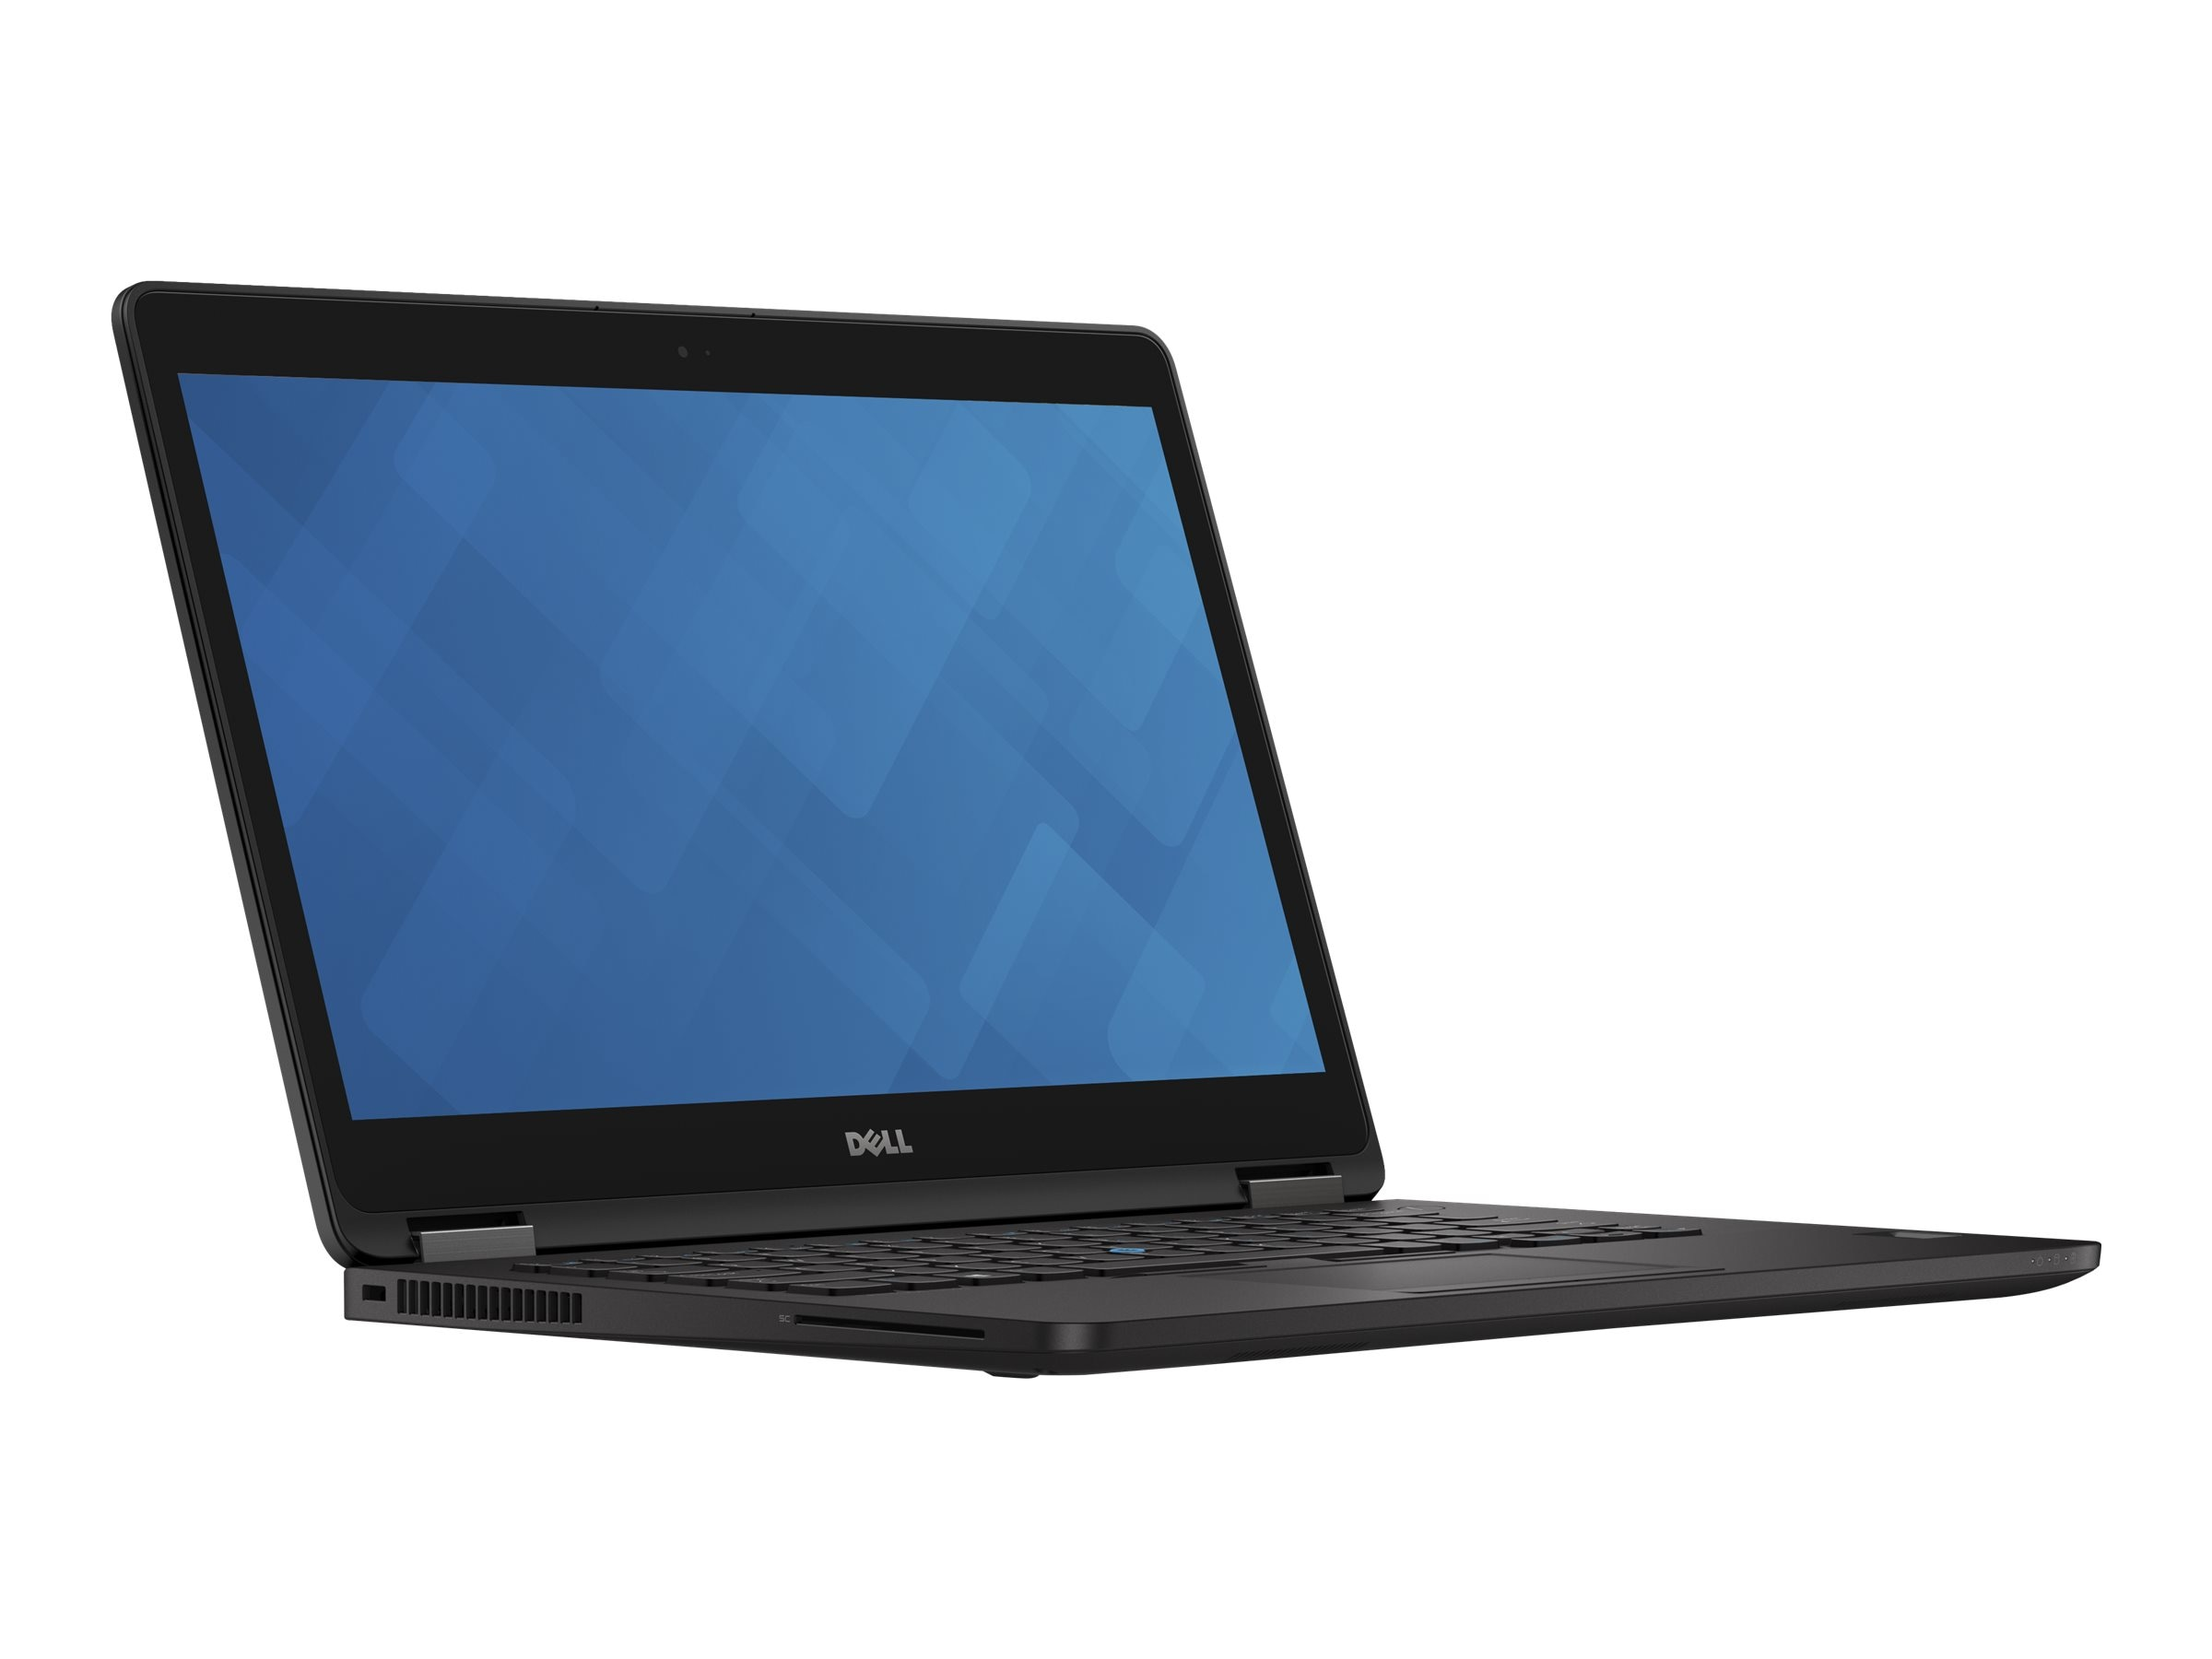 Dell Latitude E7470 Core i7-6600U 2.6GHz 8GB 256GB SSD ac BT WC 4C 14 FHD W7P64-W10P, THTW7